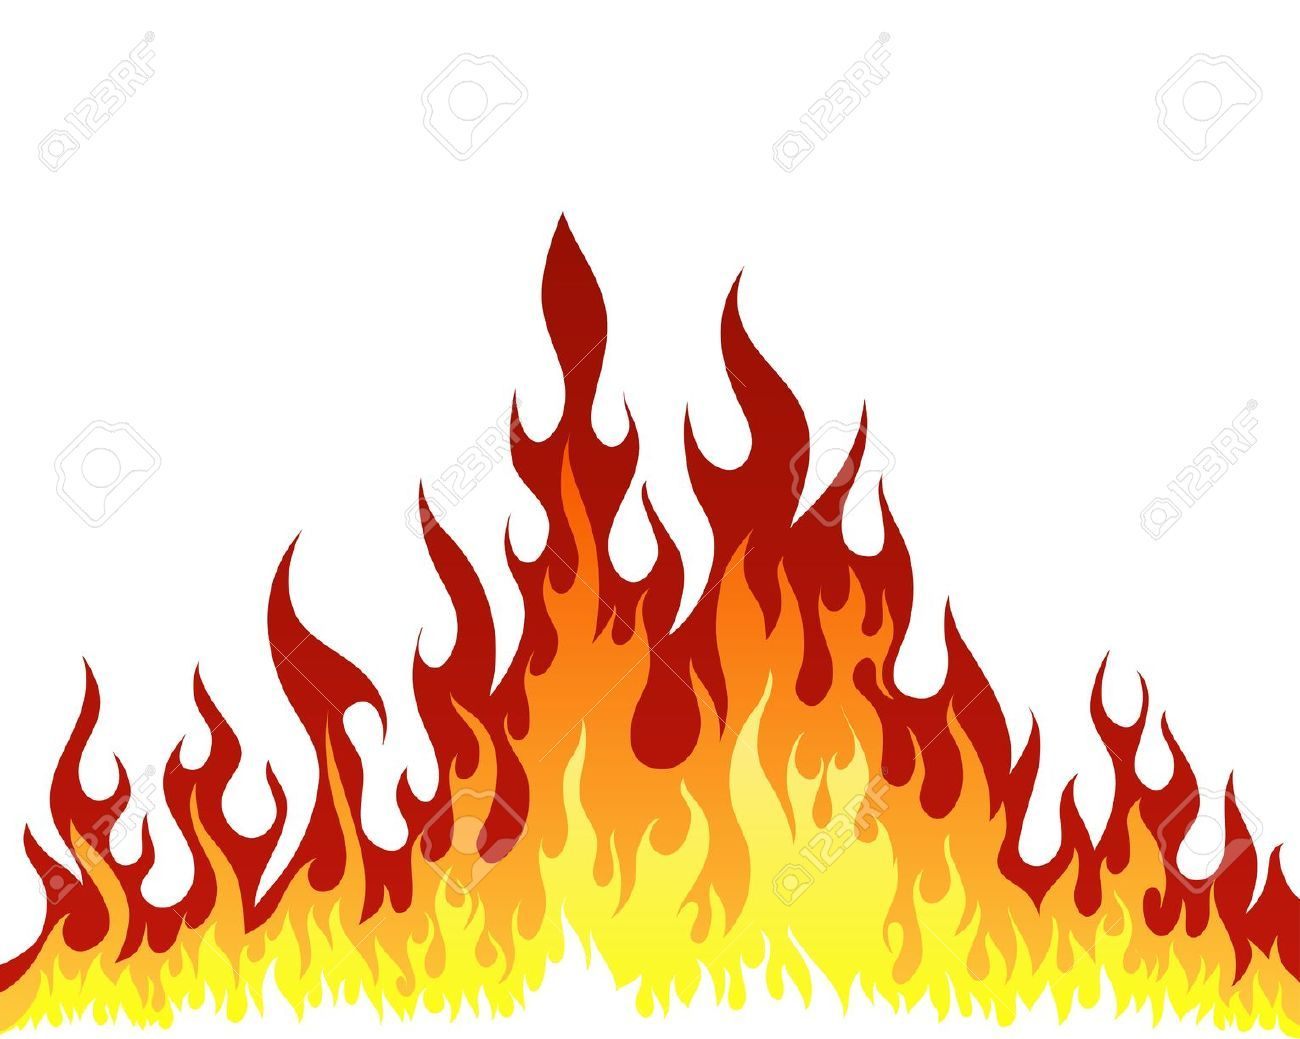 Flames white background border flame border w pictures to pin on - Fire Flames Designs Fire Flame Designs B